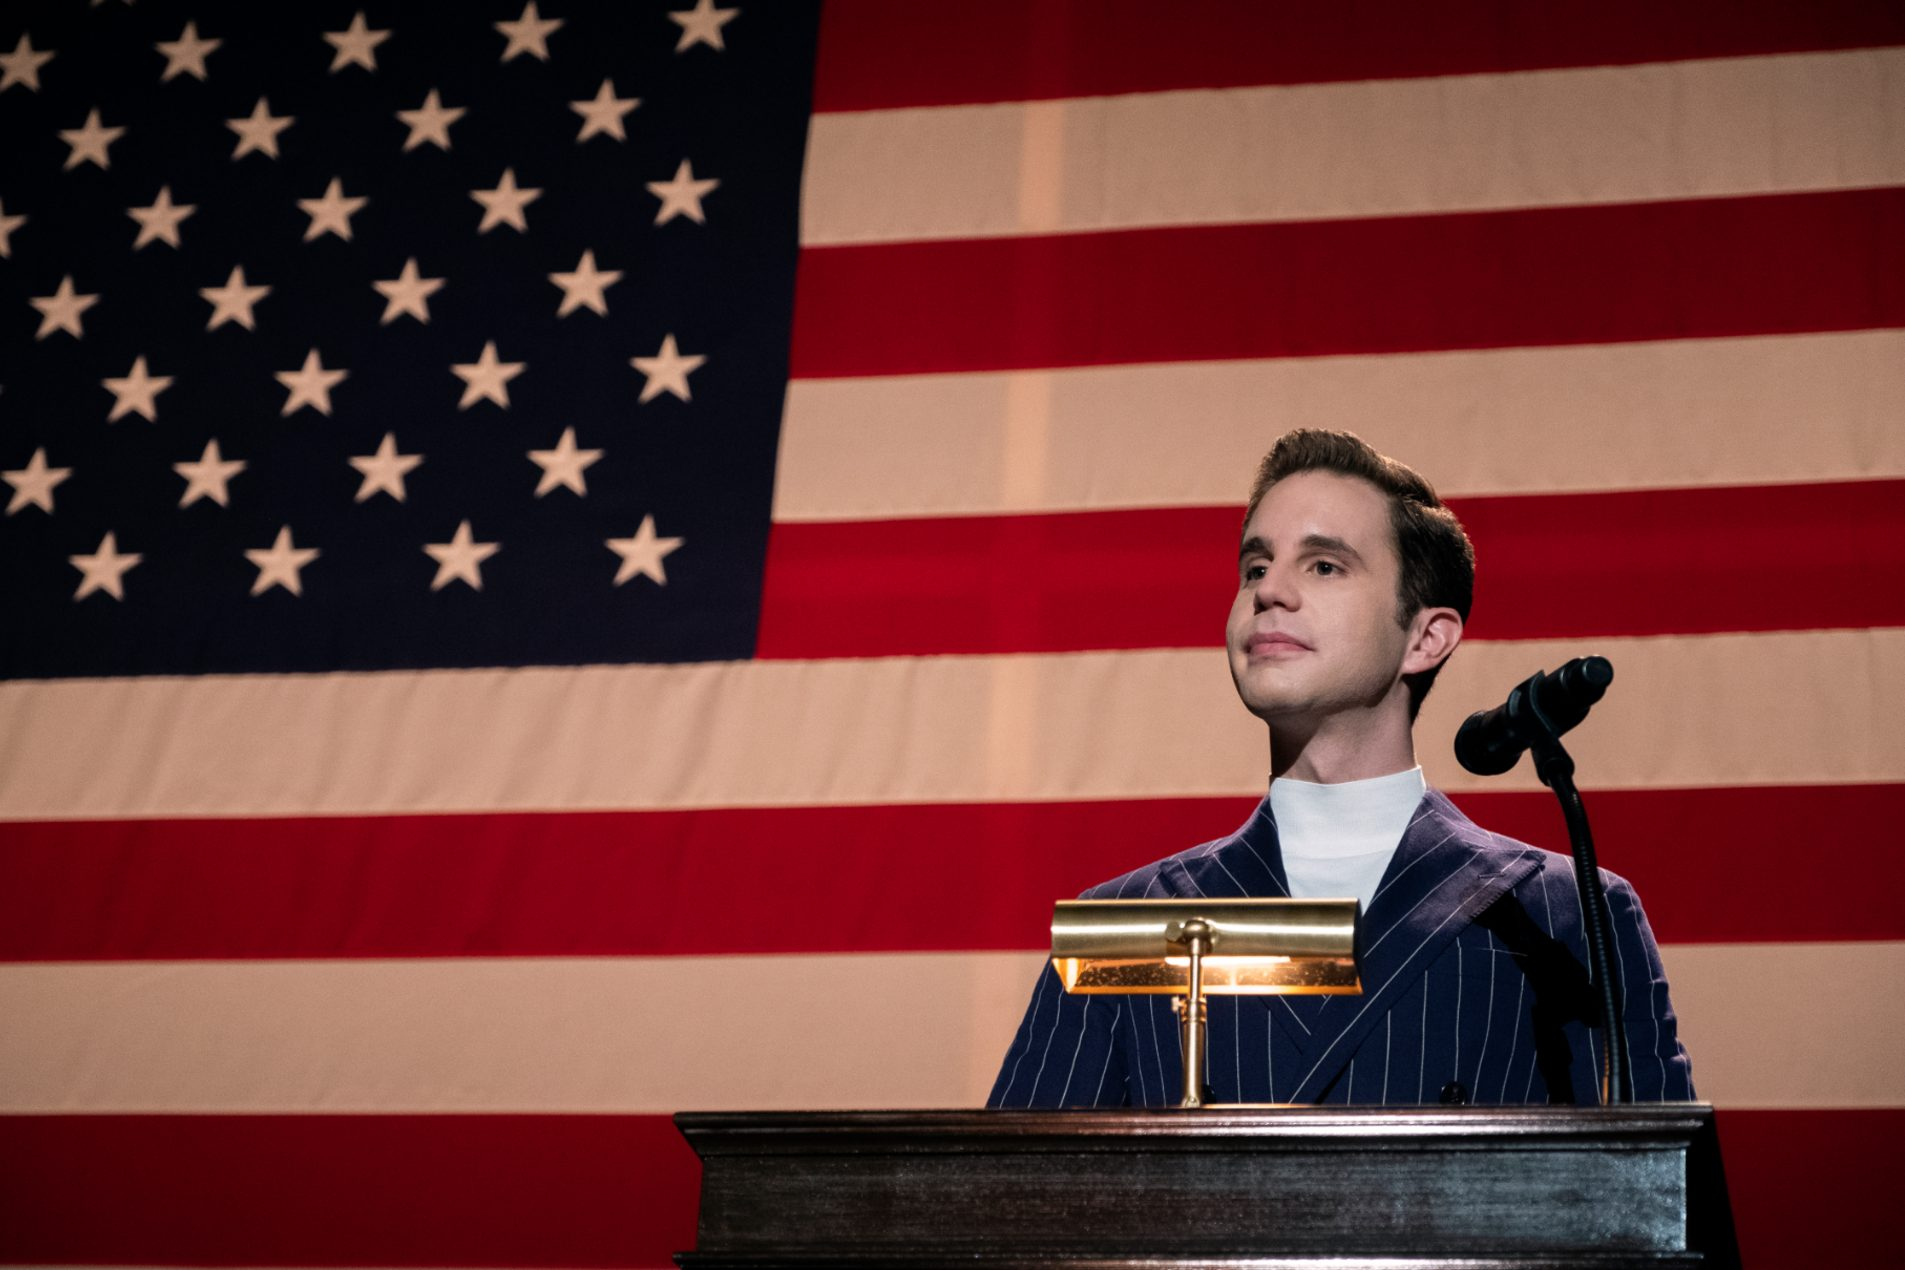 Ben Platt as Payton Hobart gives a political speech in front of the American flag in The Politician.